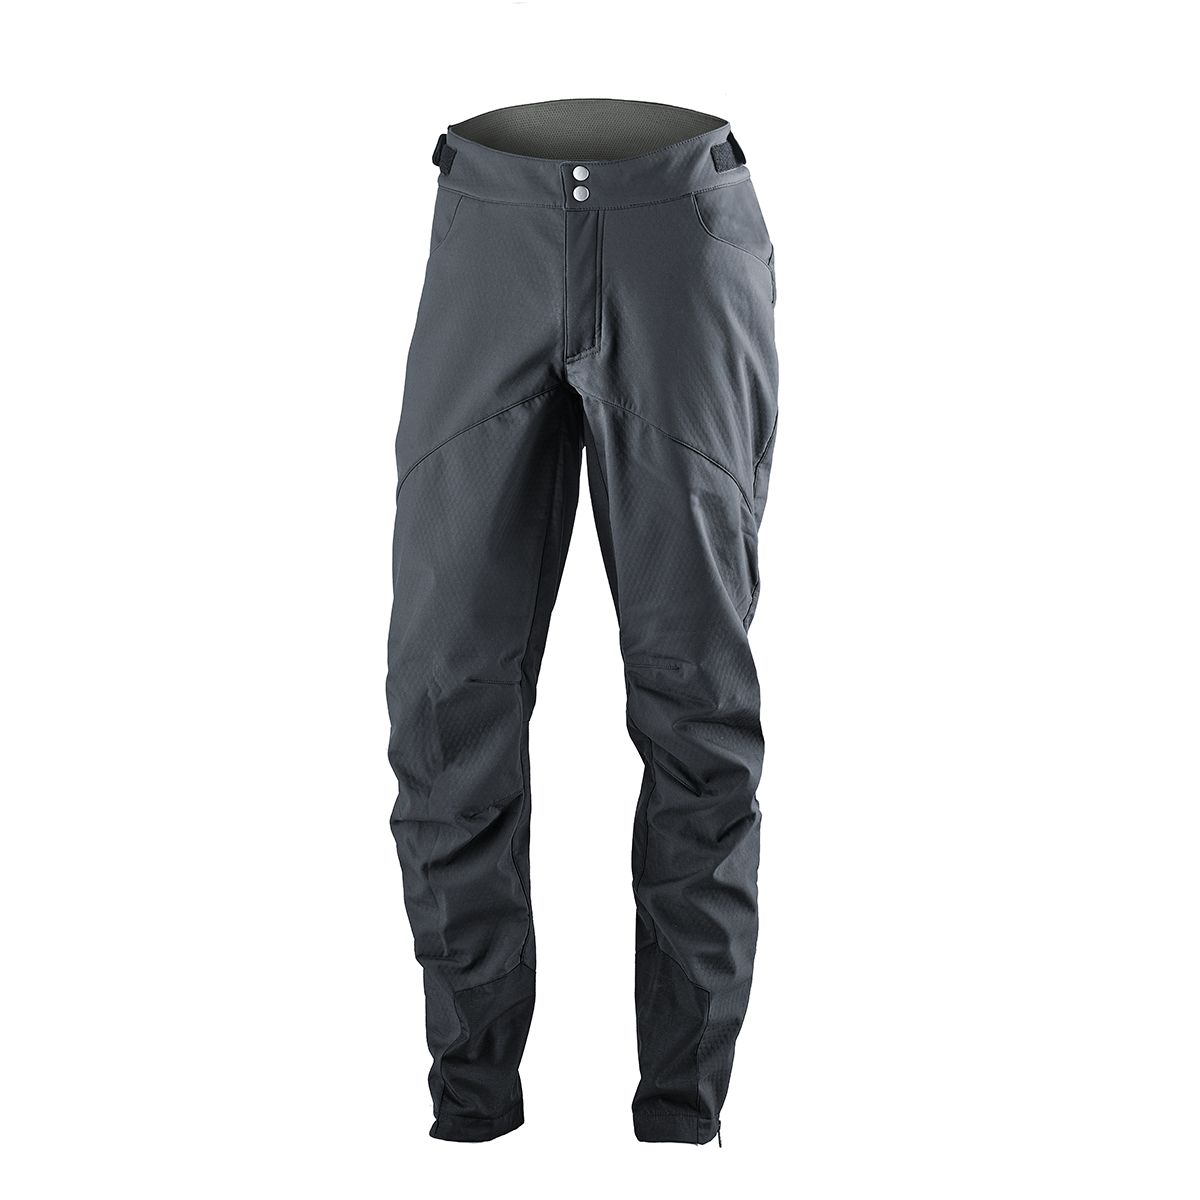 Men's ZETAR Softshell Pants Herren Softshellhose